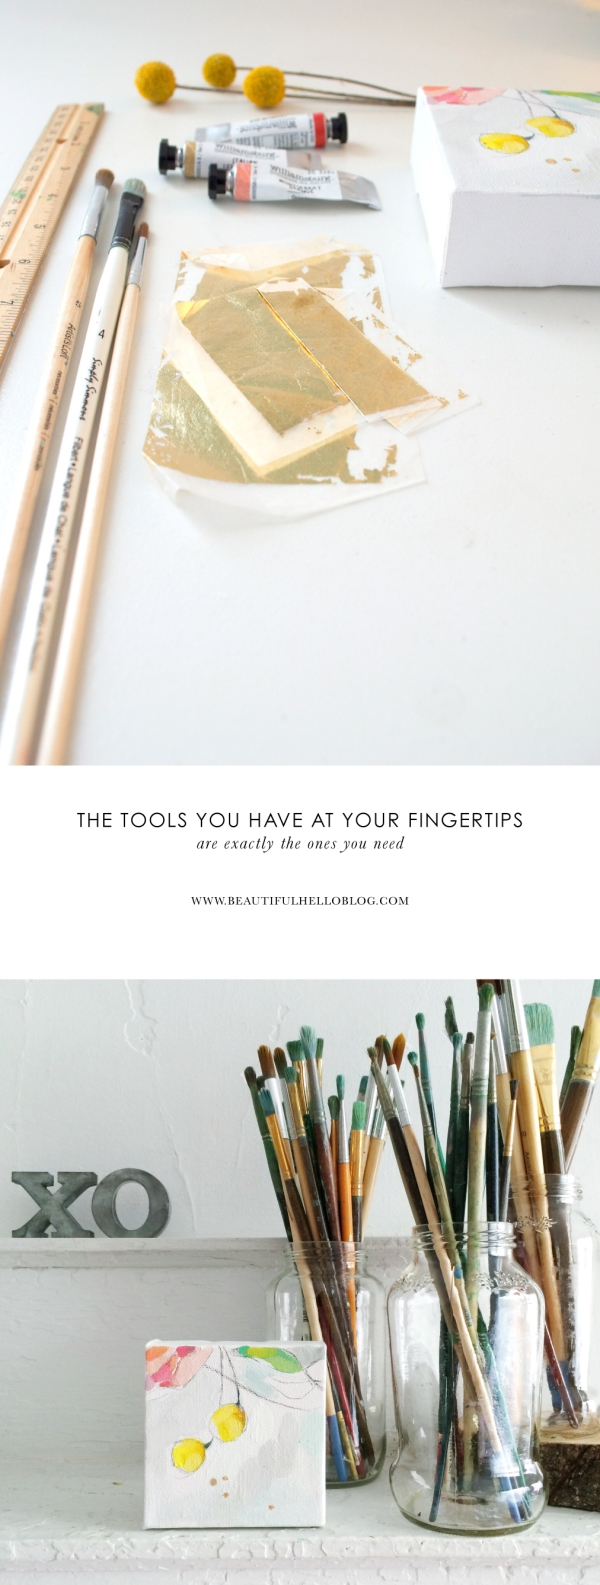 Art Supplies (the 10 things I can't live without and the 10,000 I can)  Emily Jeffords, Beautiful Hello Blog